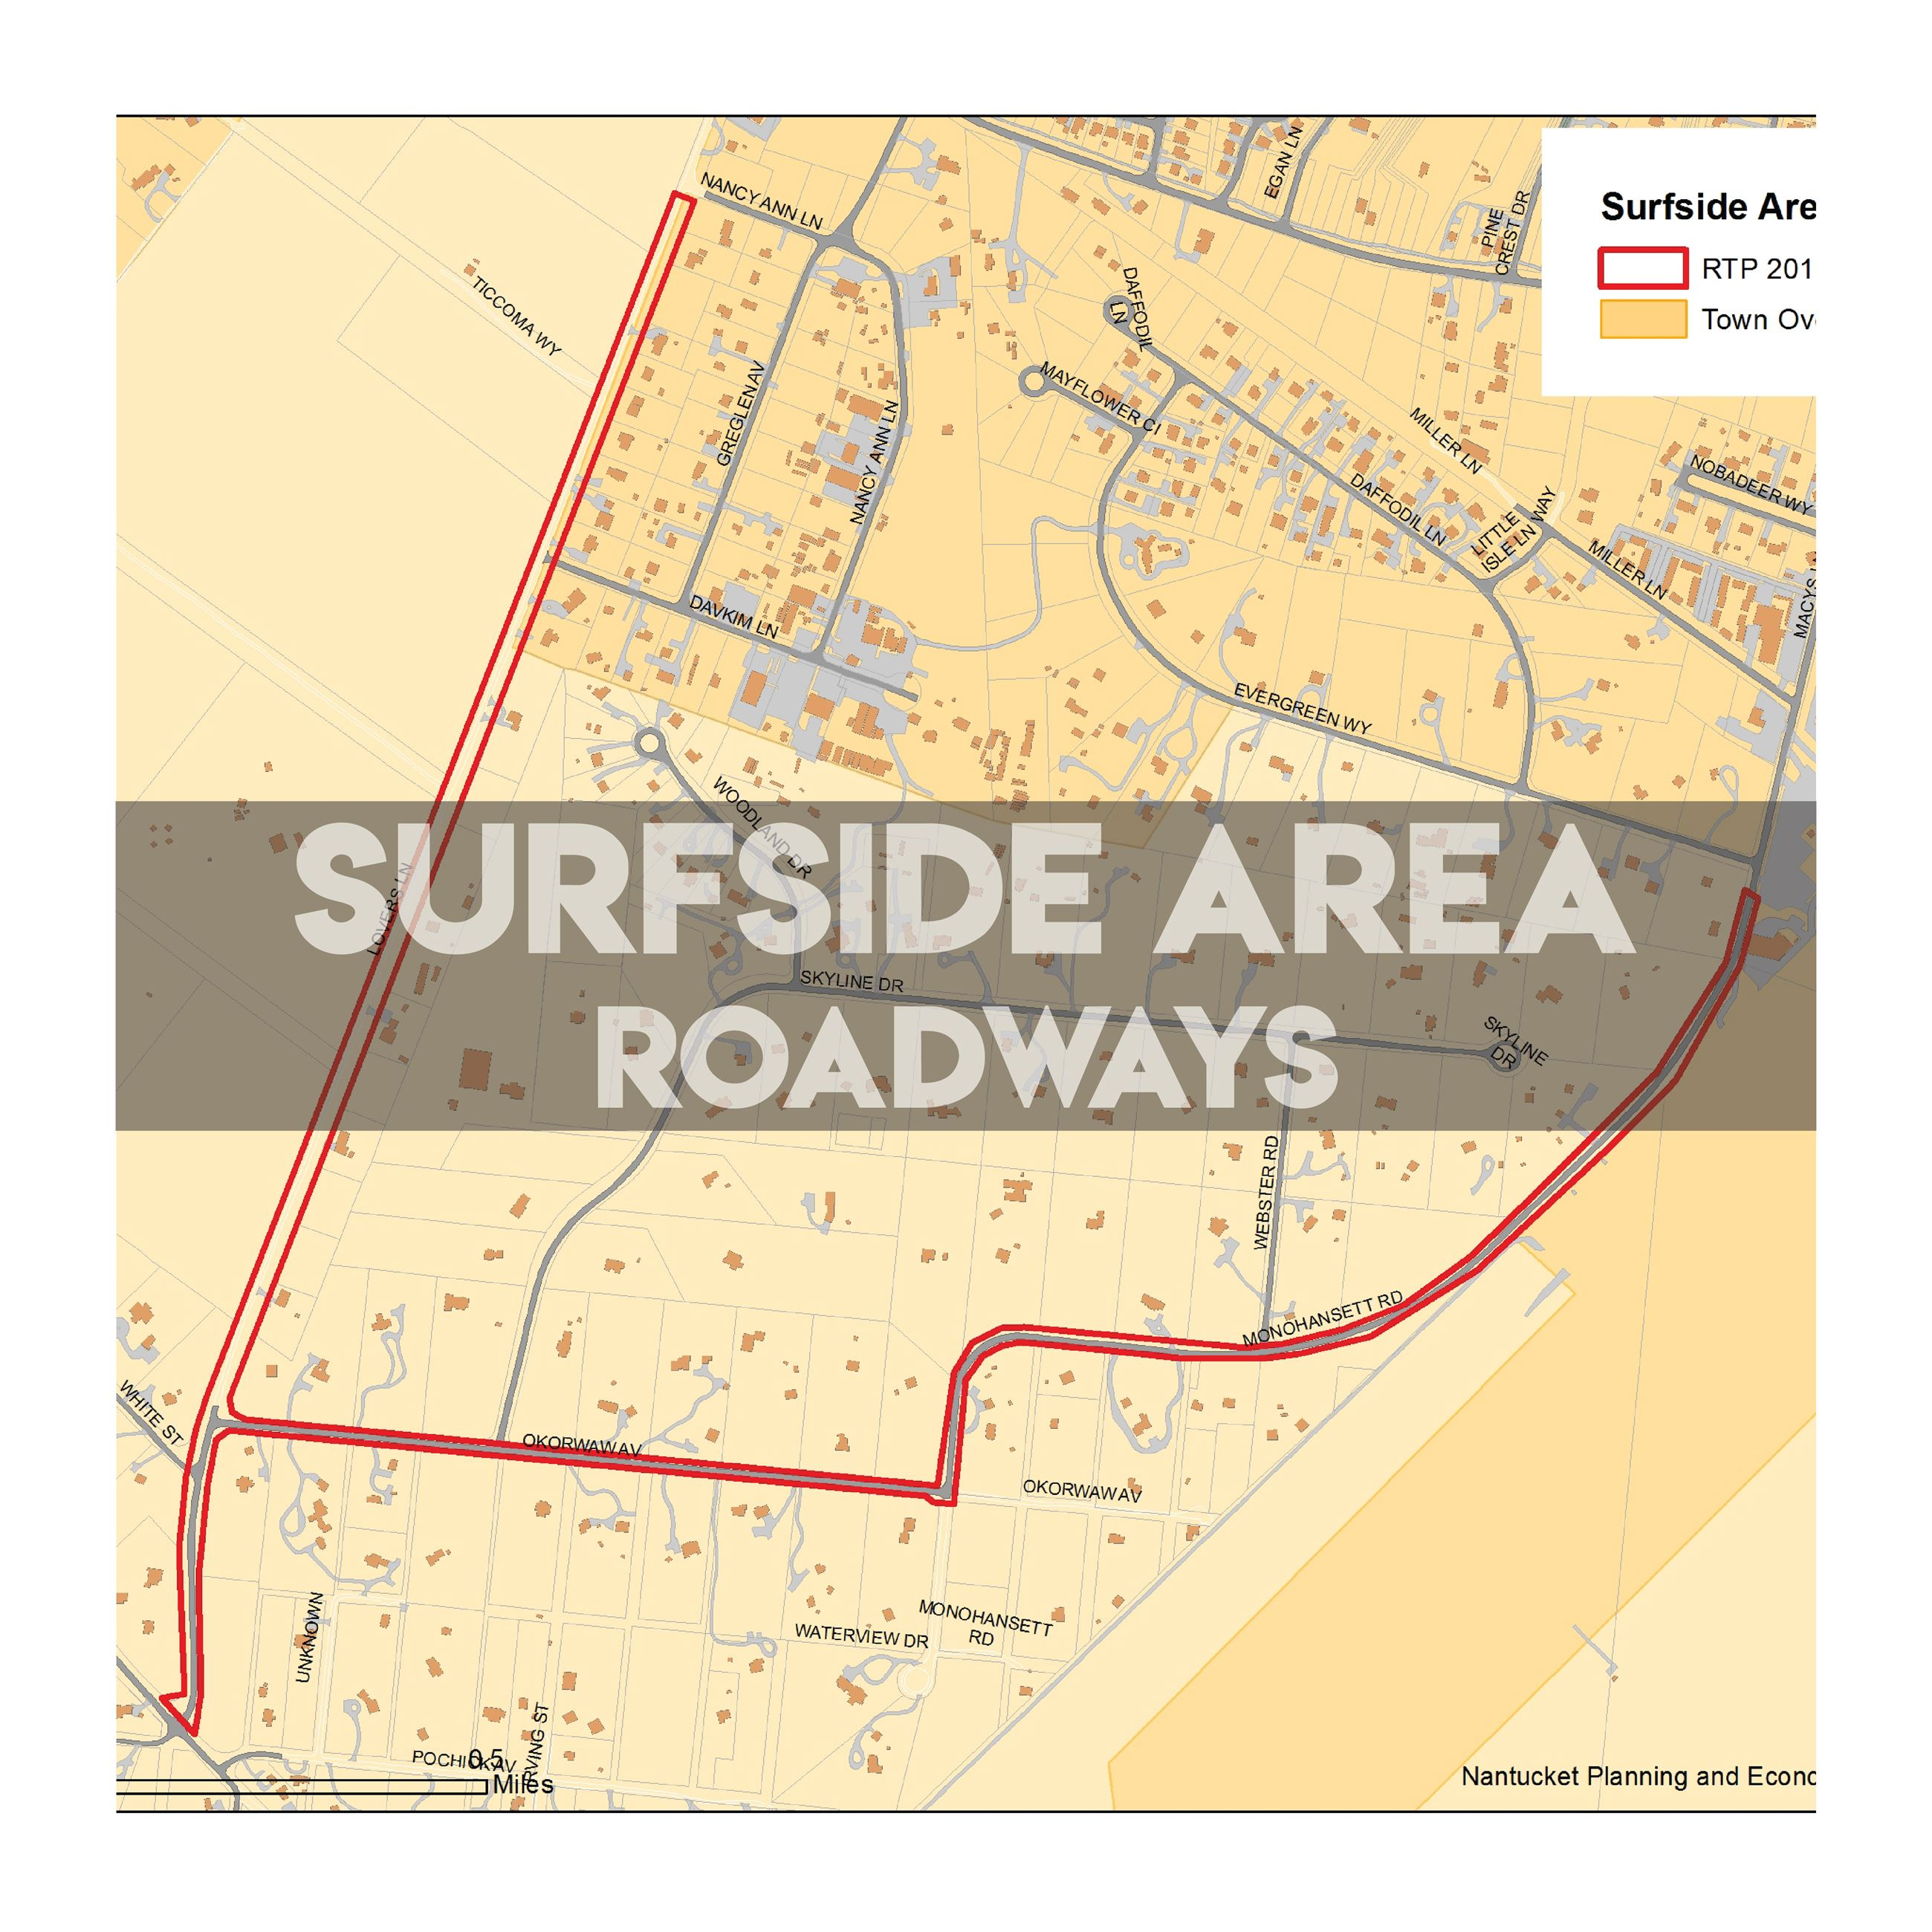 surfside area roadways